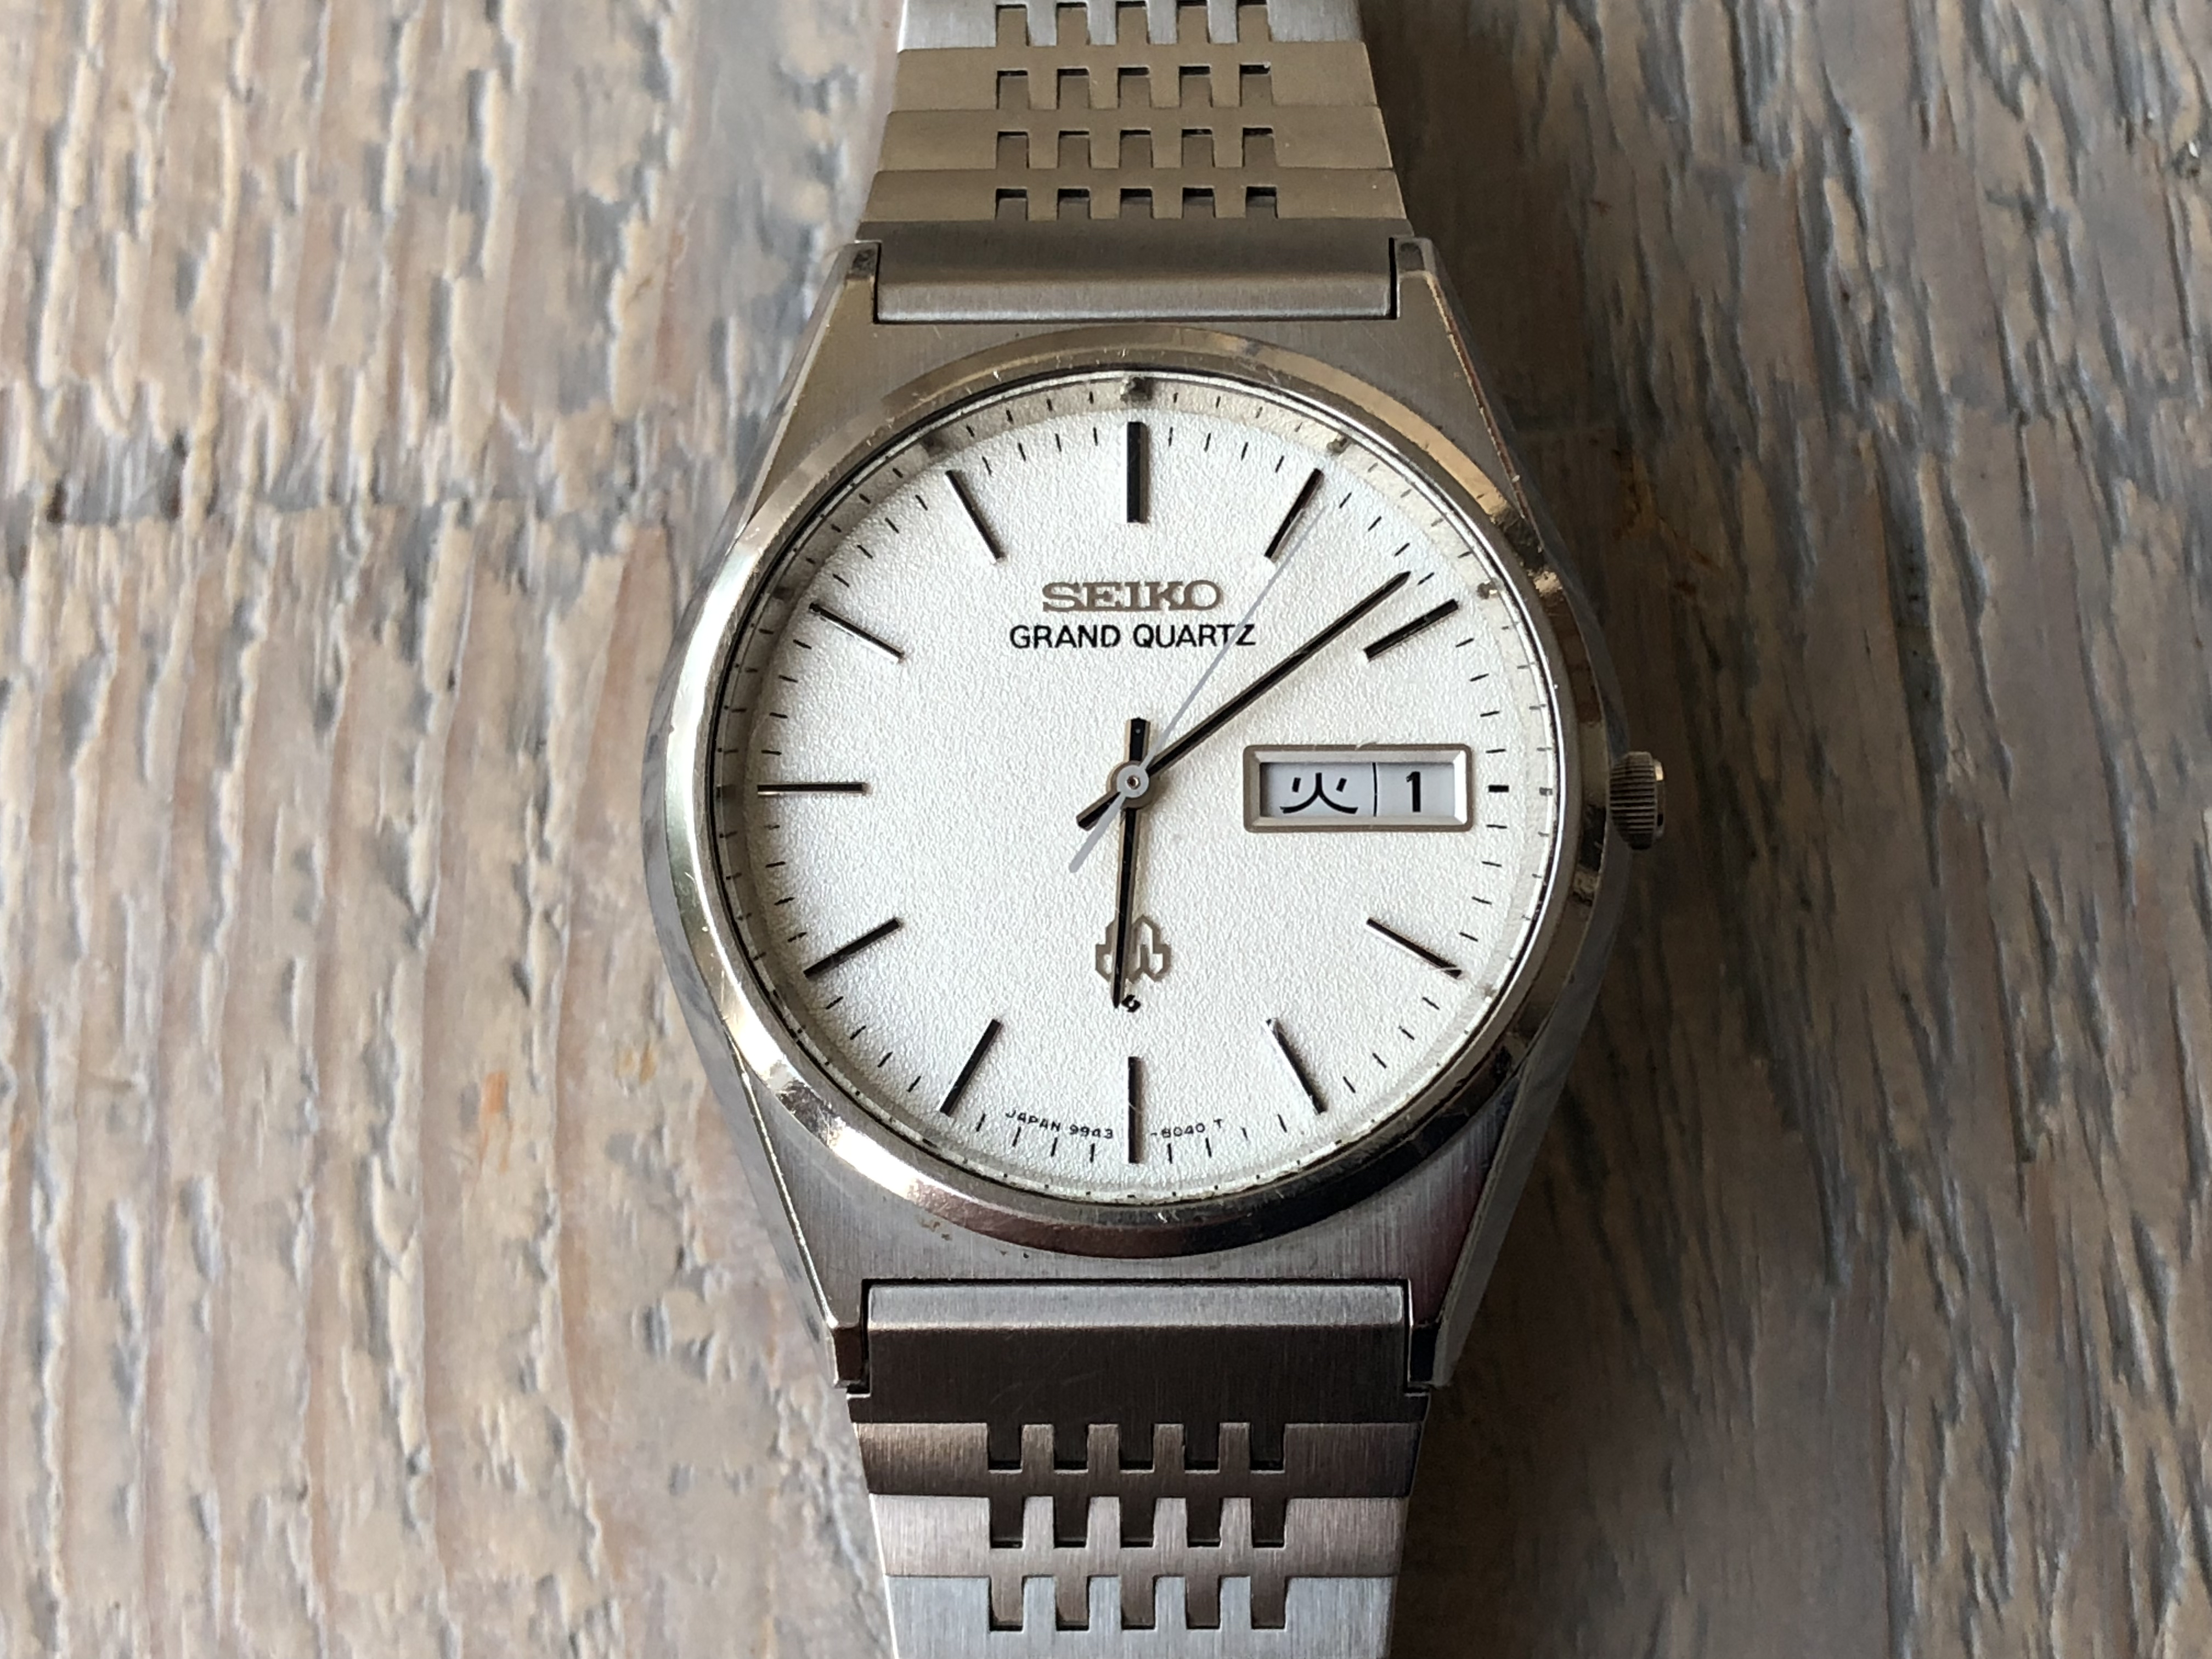 Seiko Grand Quartz 9943-8030 (Sold)